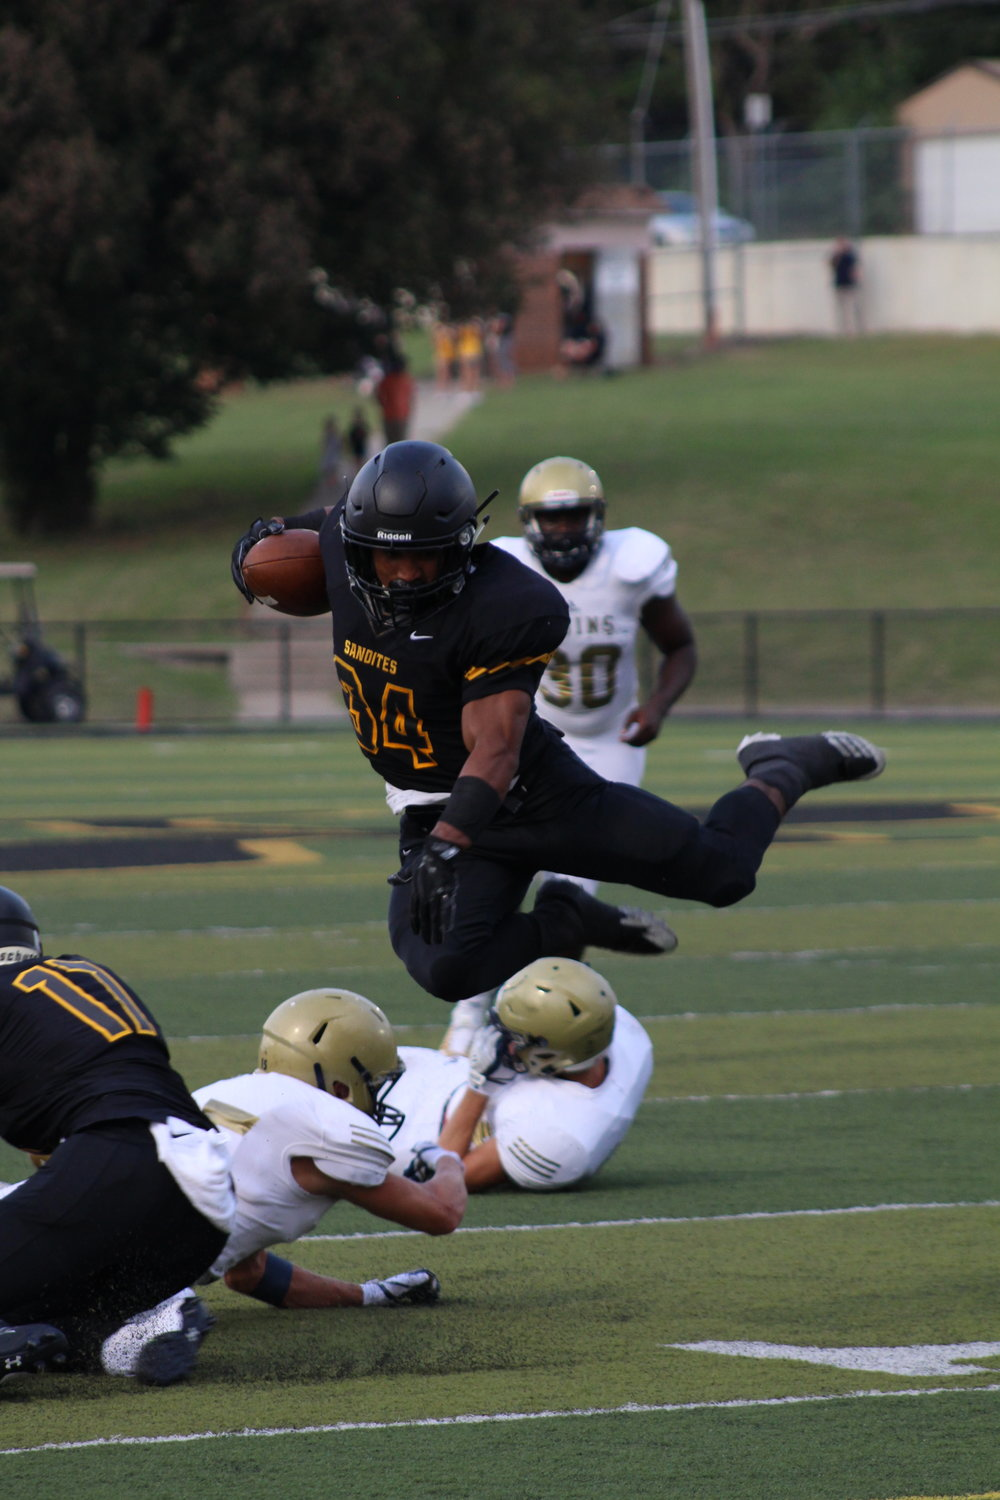 Senior running back Payton Scott goes airborne in a run against Pulaski Academy. (Photo: Morgan Miller).